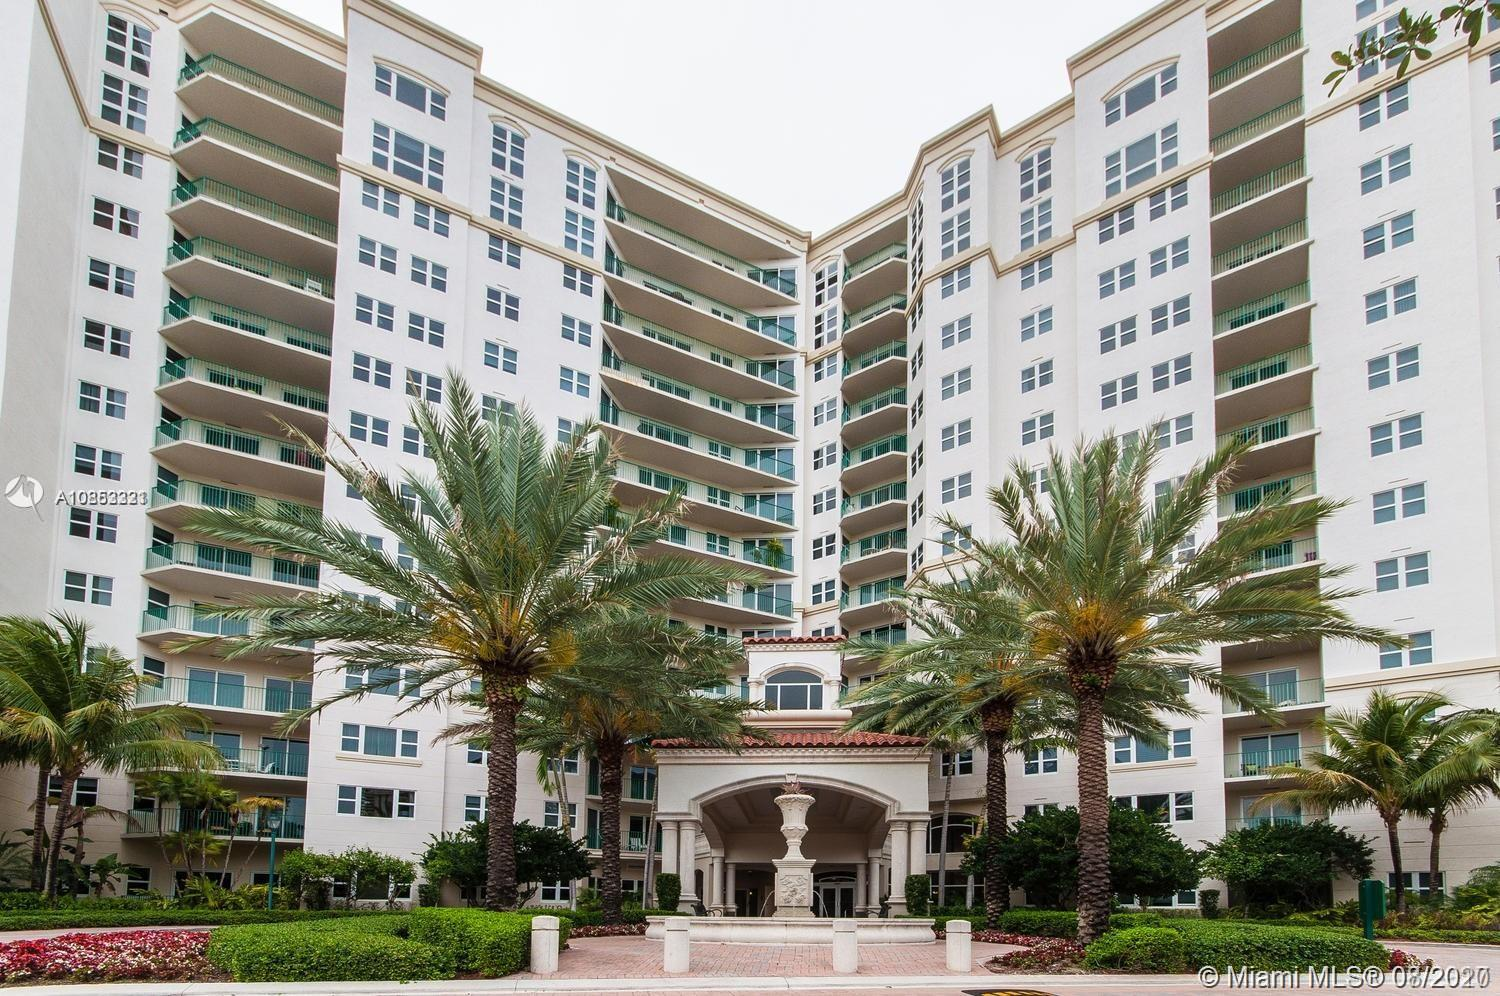 19900 E Country Club Dr #811 For Sale A10853321, FL